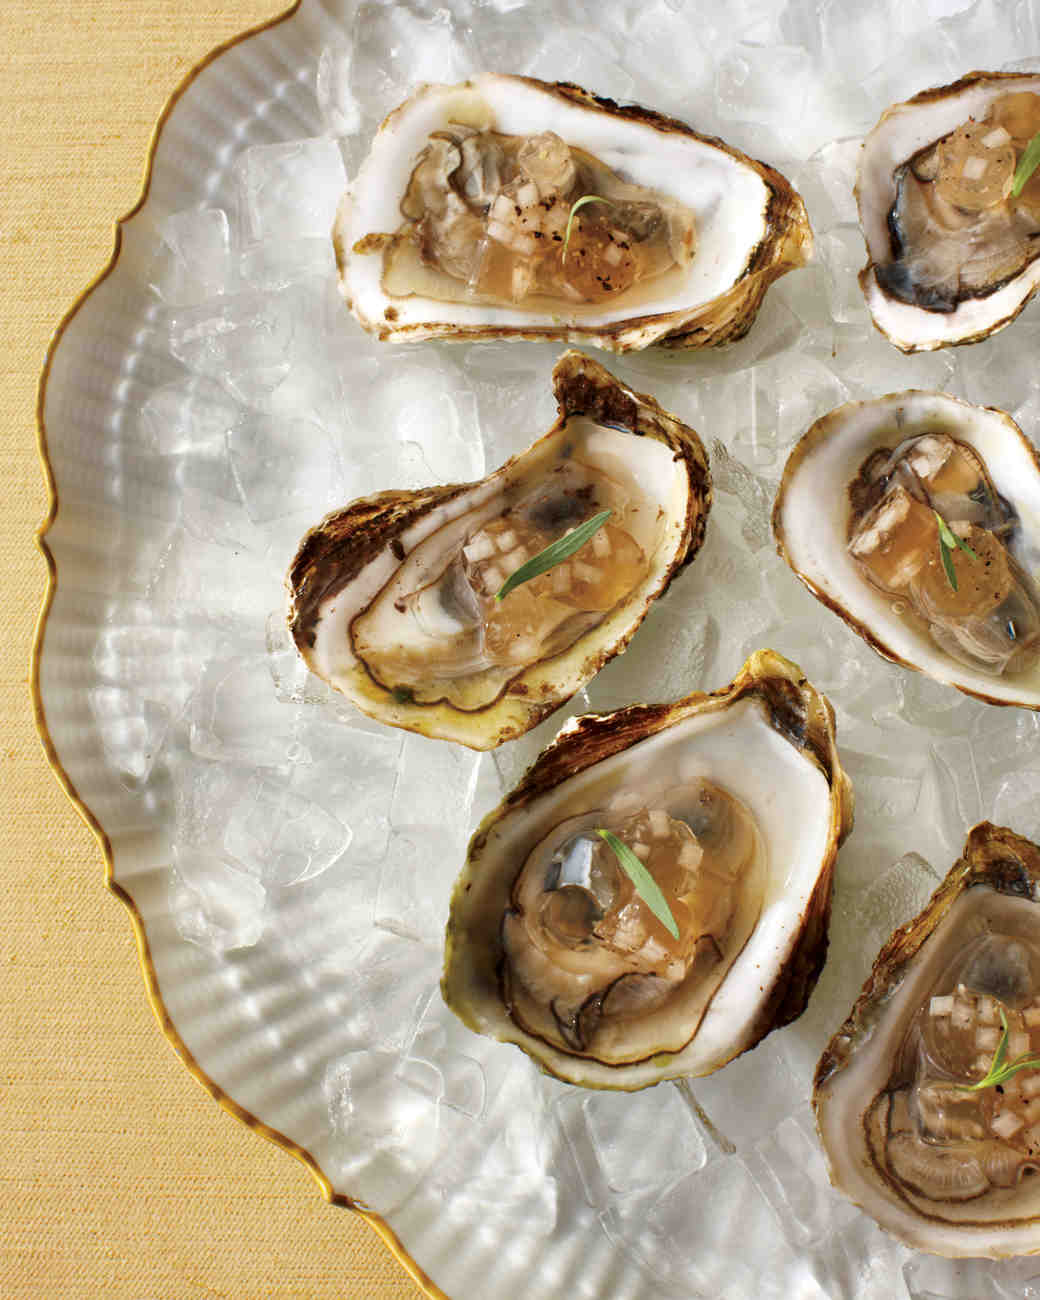 Raw Oysters with Mignonette Gelee